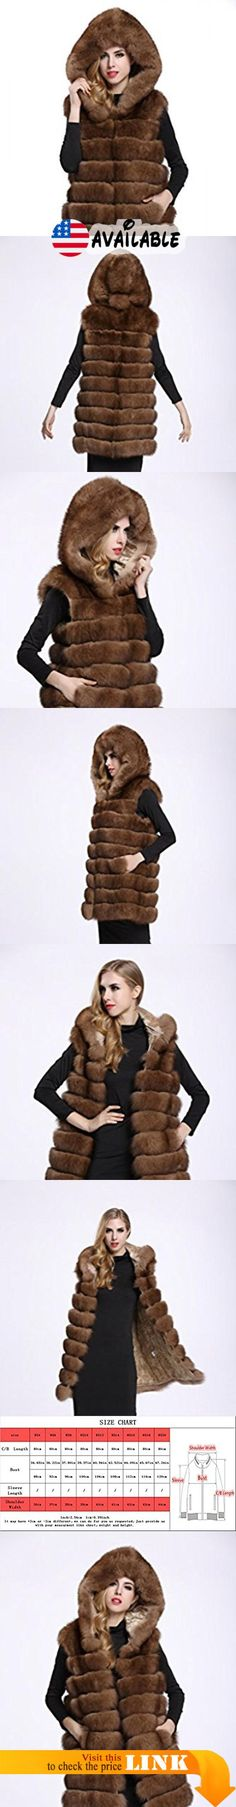 "B01J1CVSUI : TOPFUR Women's Real Fox Fur Vest Sable Fur Thick Waistcoat With Big Hood(XL). Made from high quality Genuine silver fox fur external with soft and elastic Polyester Lining which feels cozy on the skin and comfortable to wear. Available sizes and colors of stylish fur Gilet excellently fit well with your demand. Length:31.5""(80cm). Elegant Hat with handsome Slant pockets design look stereoscopic and gorgeous as the cool model when wearing this practical and"